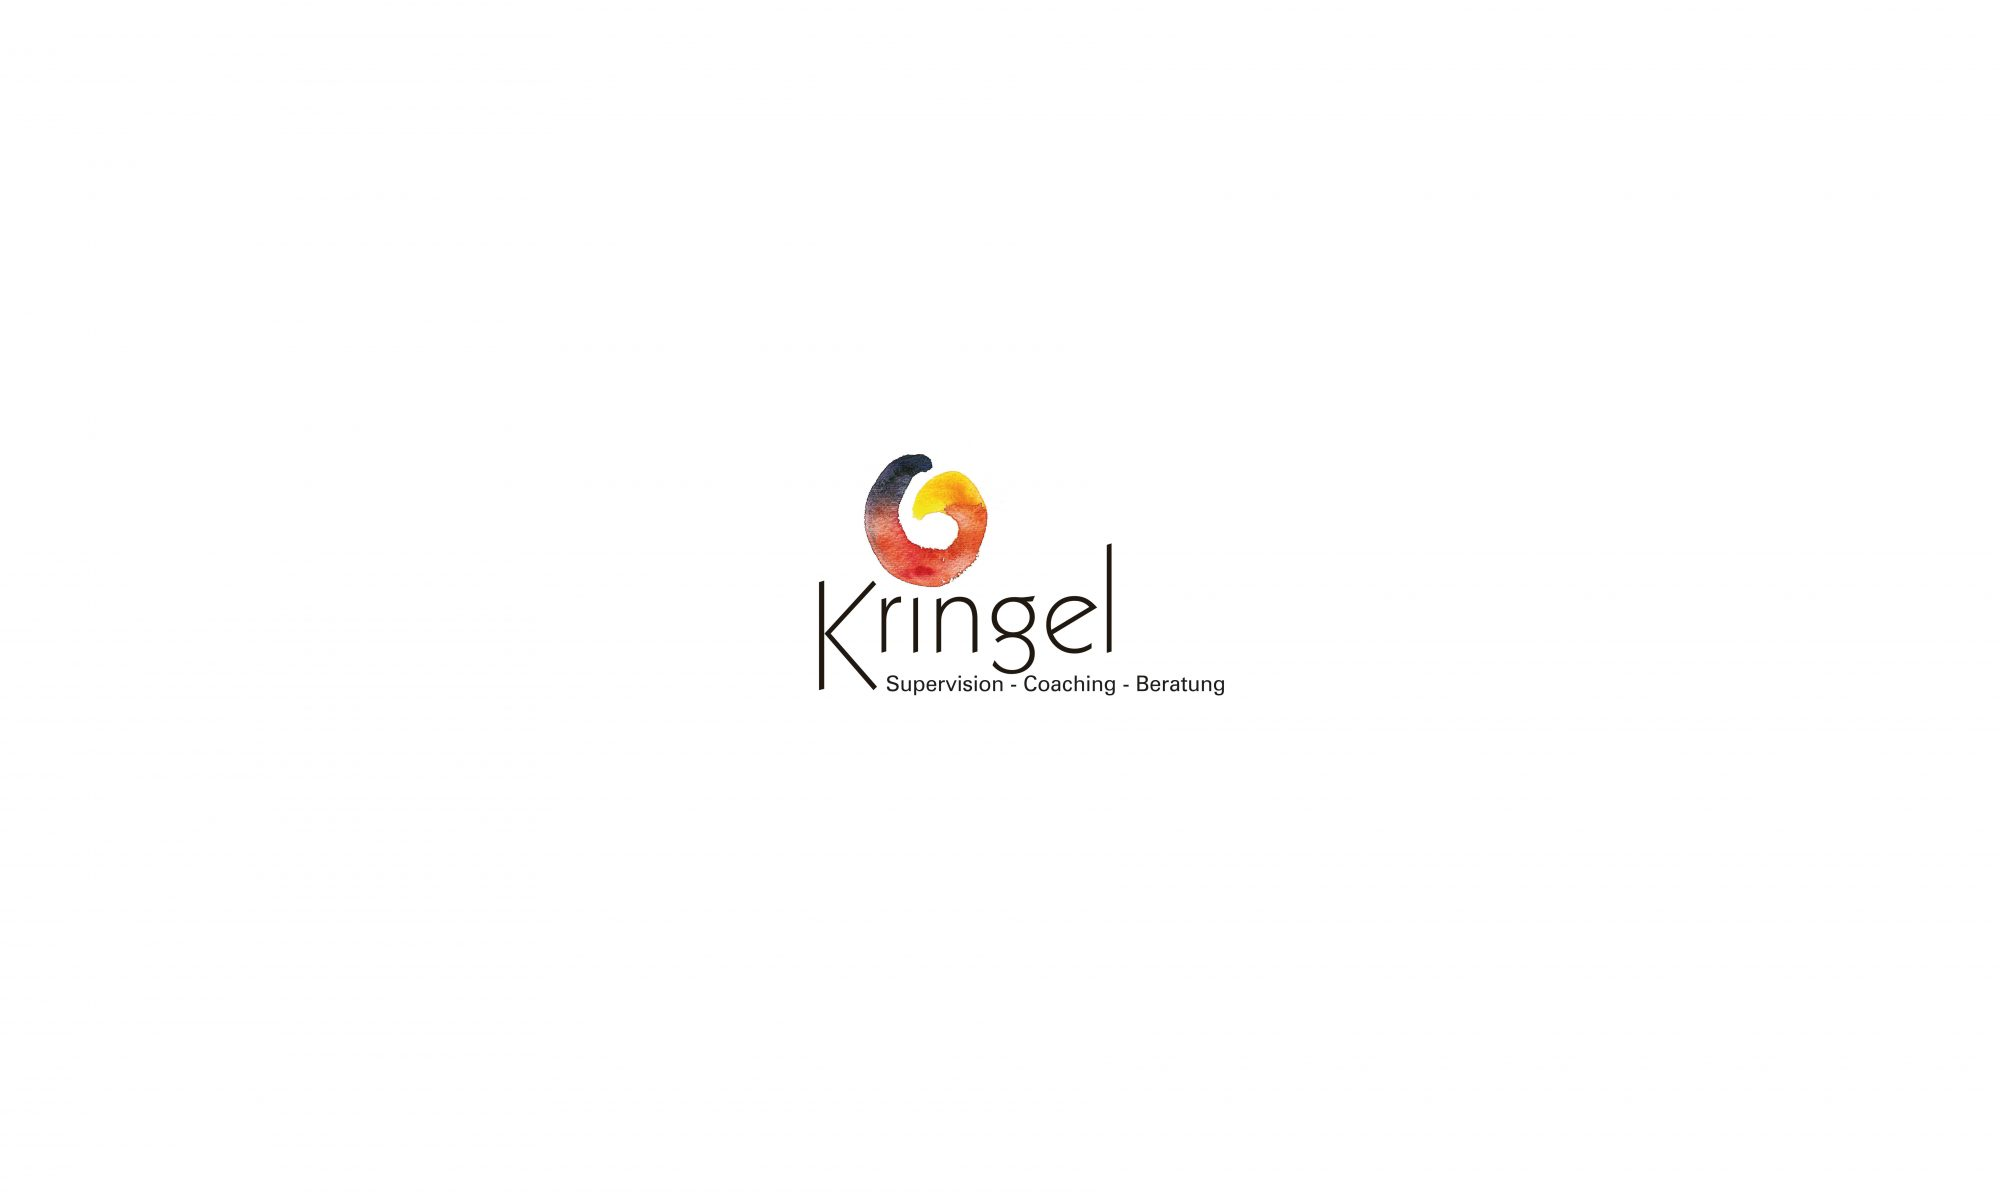 Kringel - Supervision und Coaching